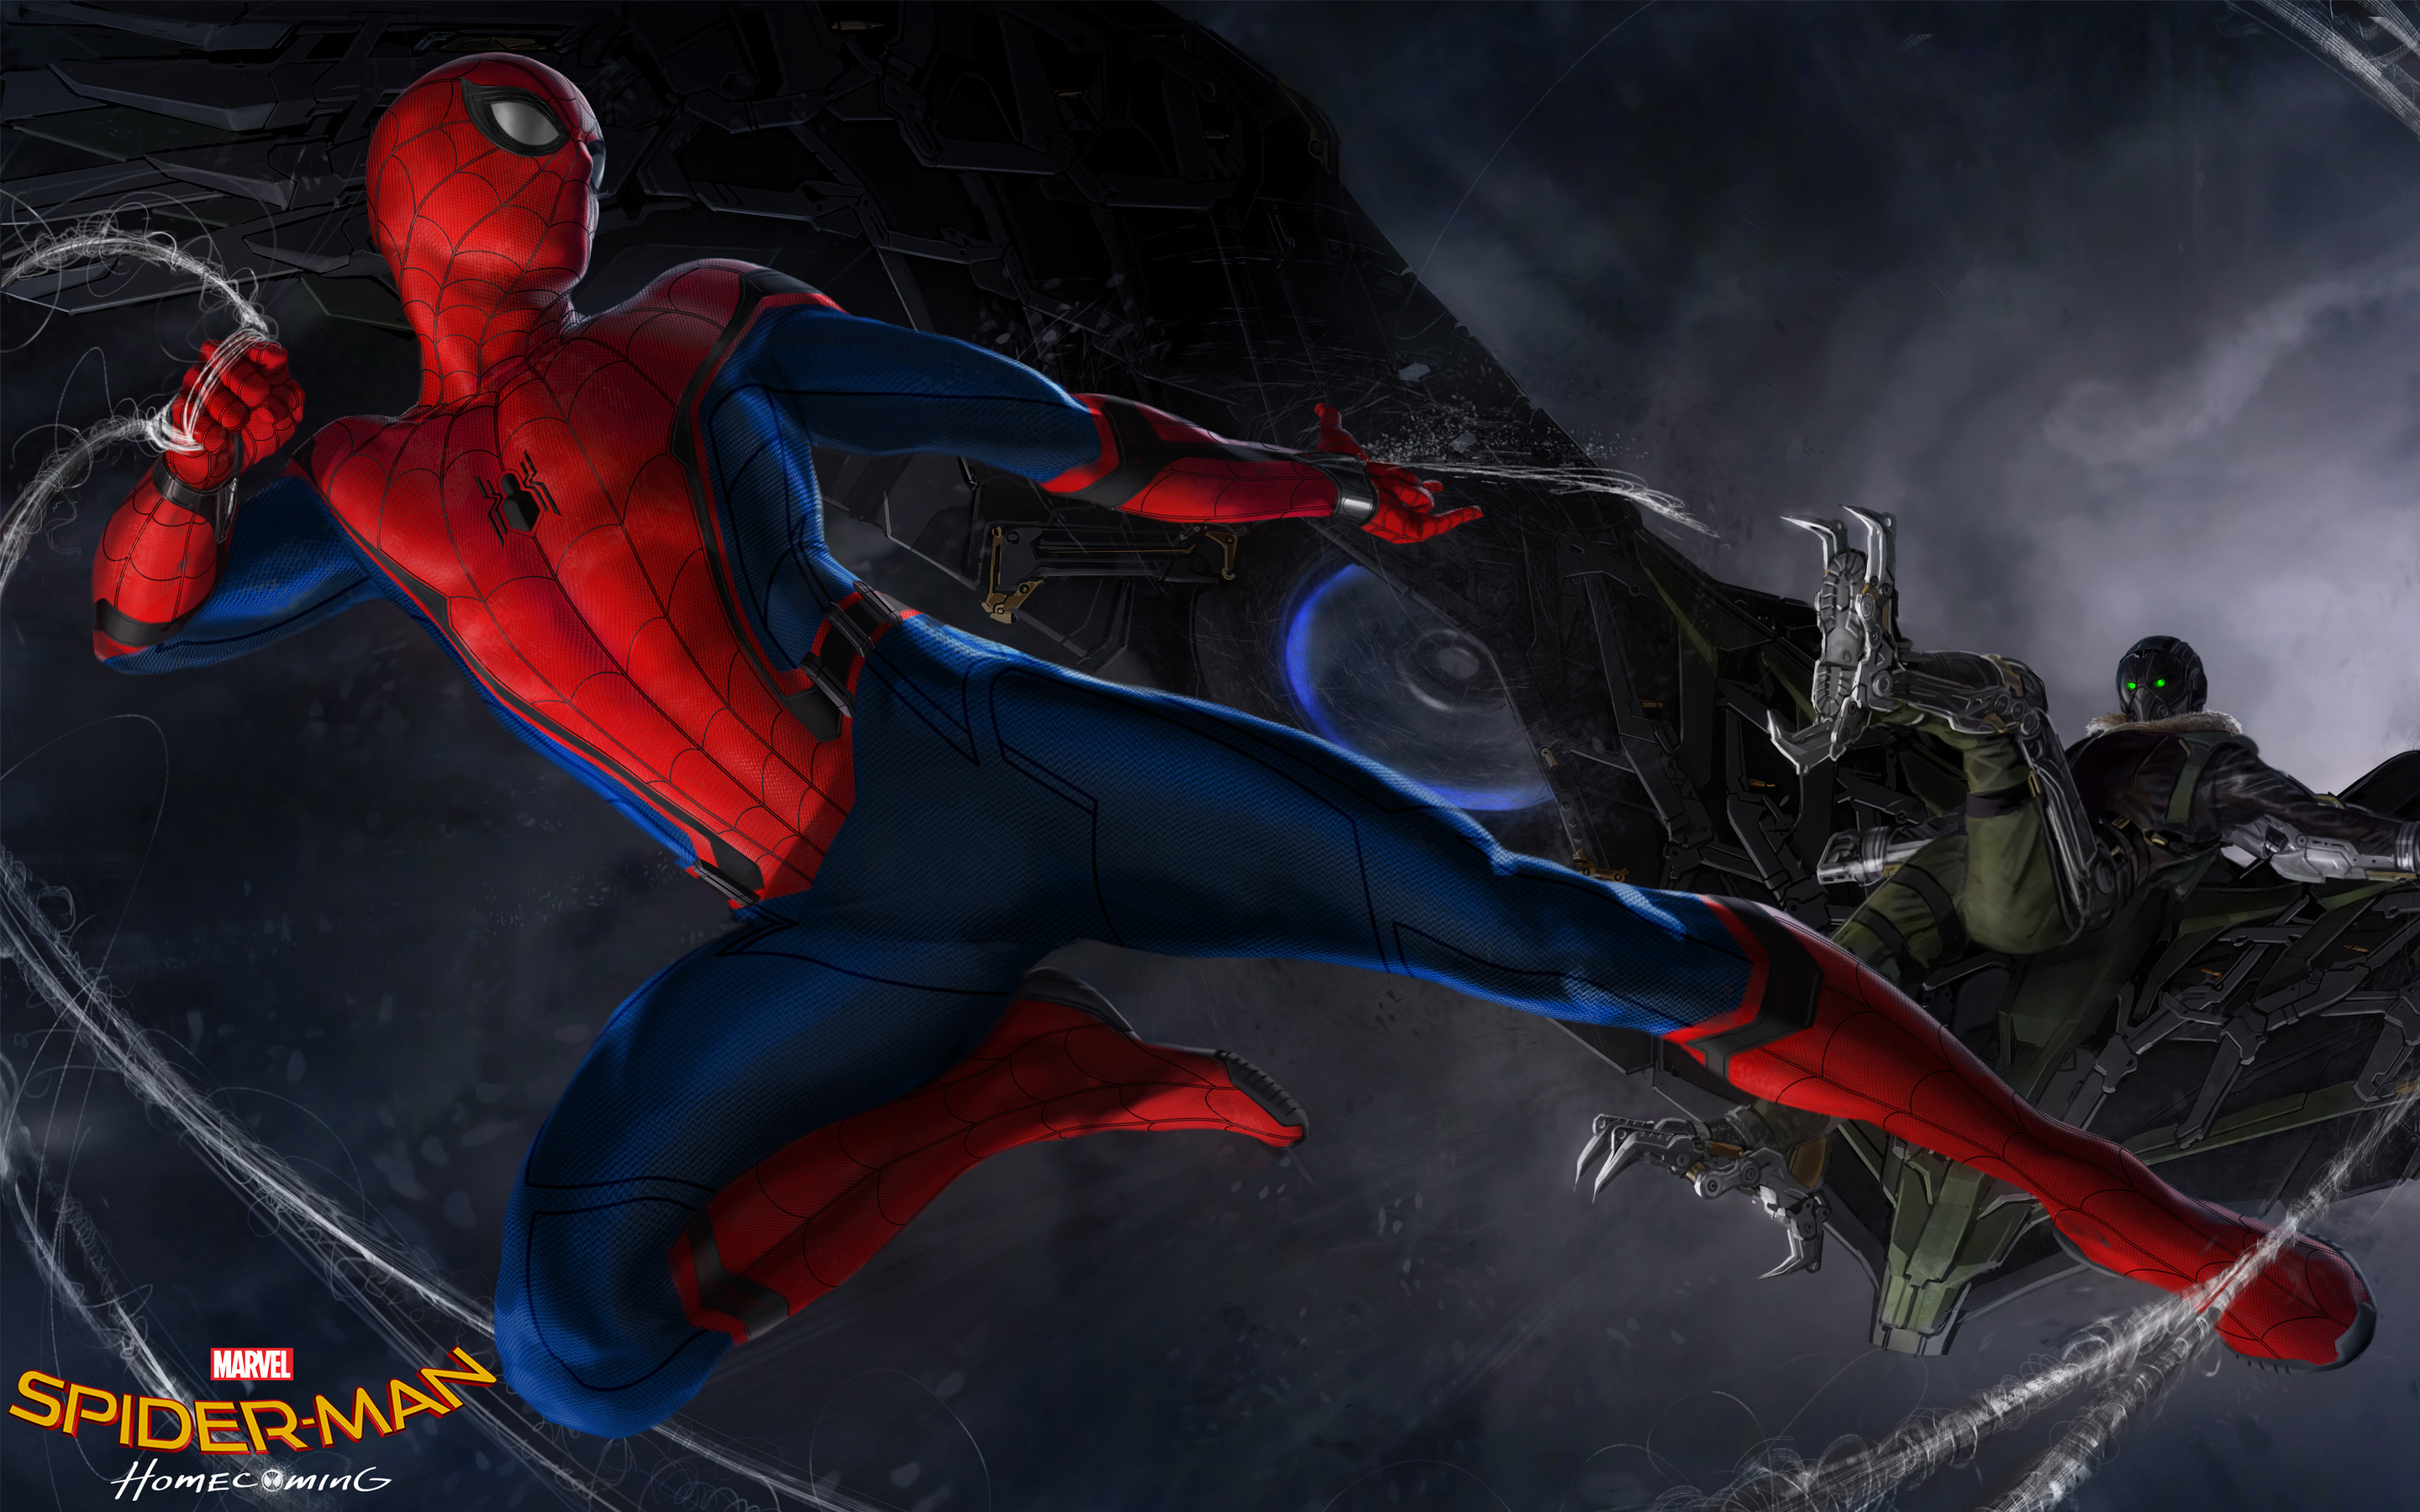 spider_man_homecoming_concept-wide